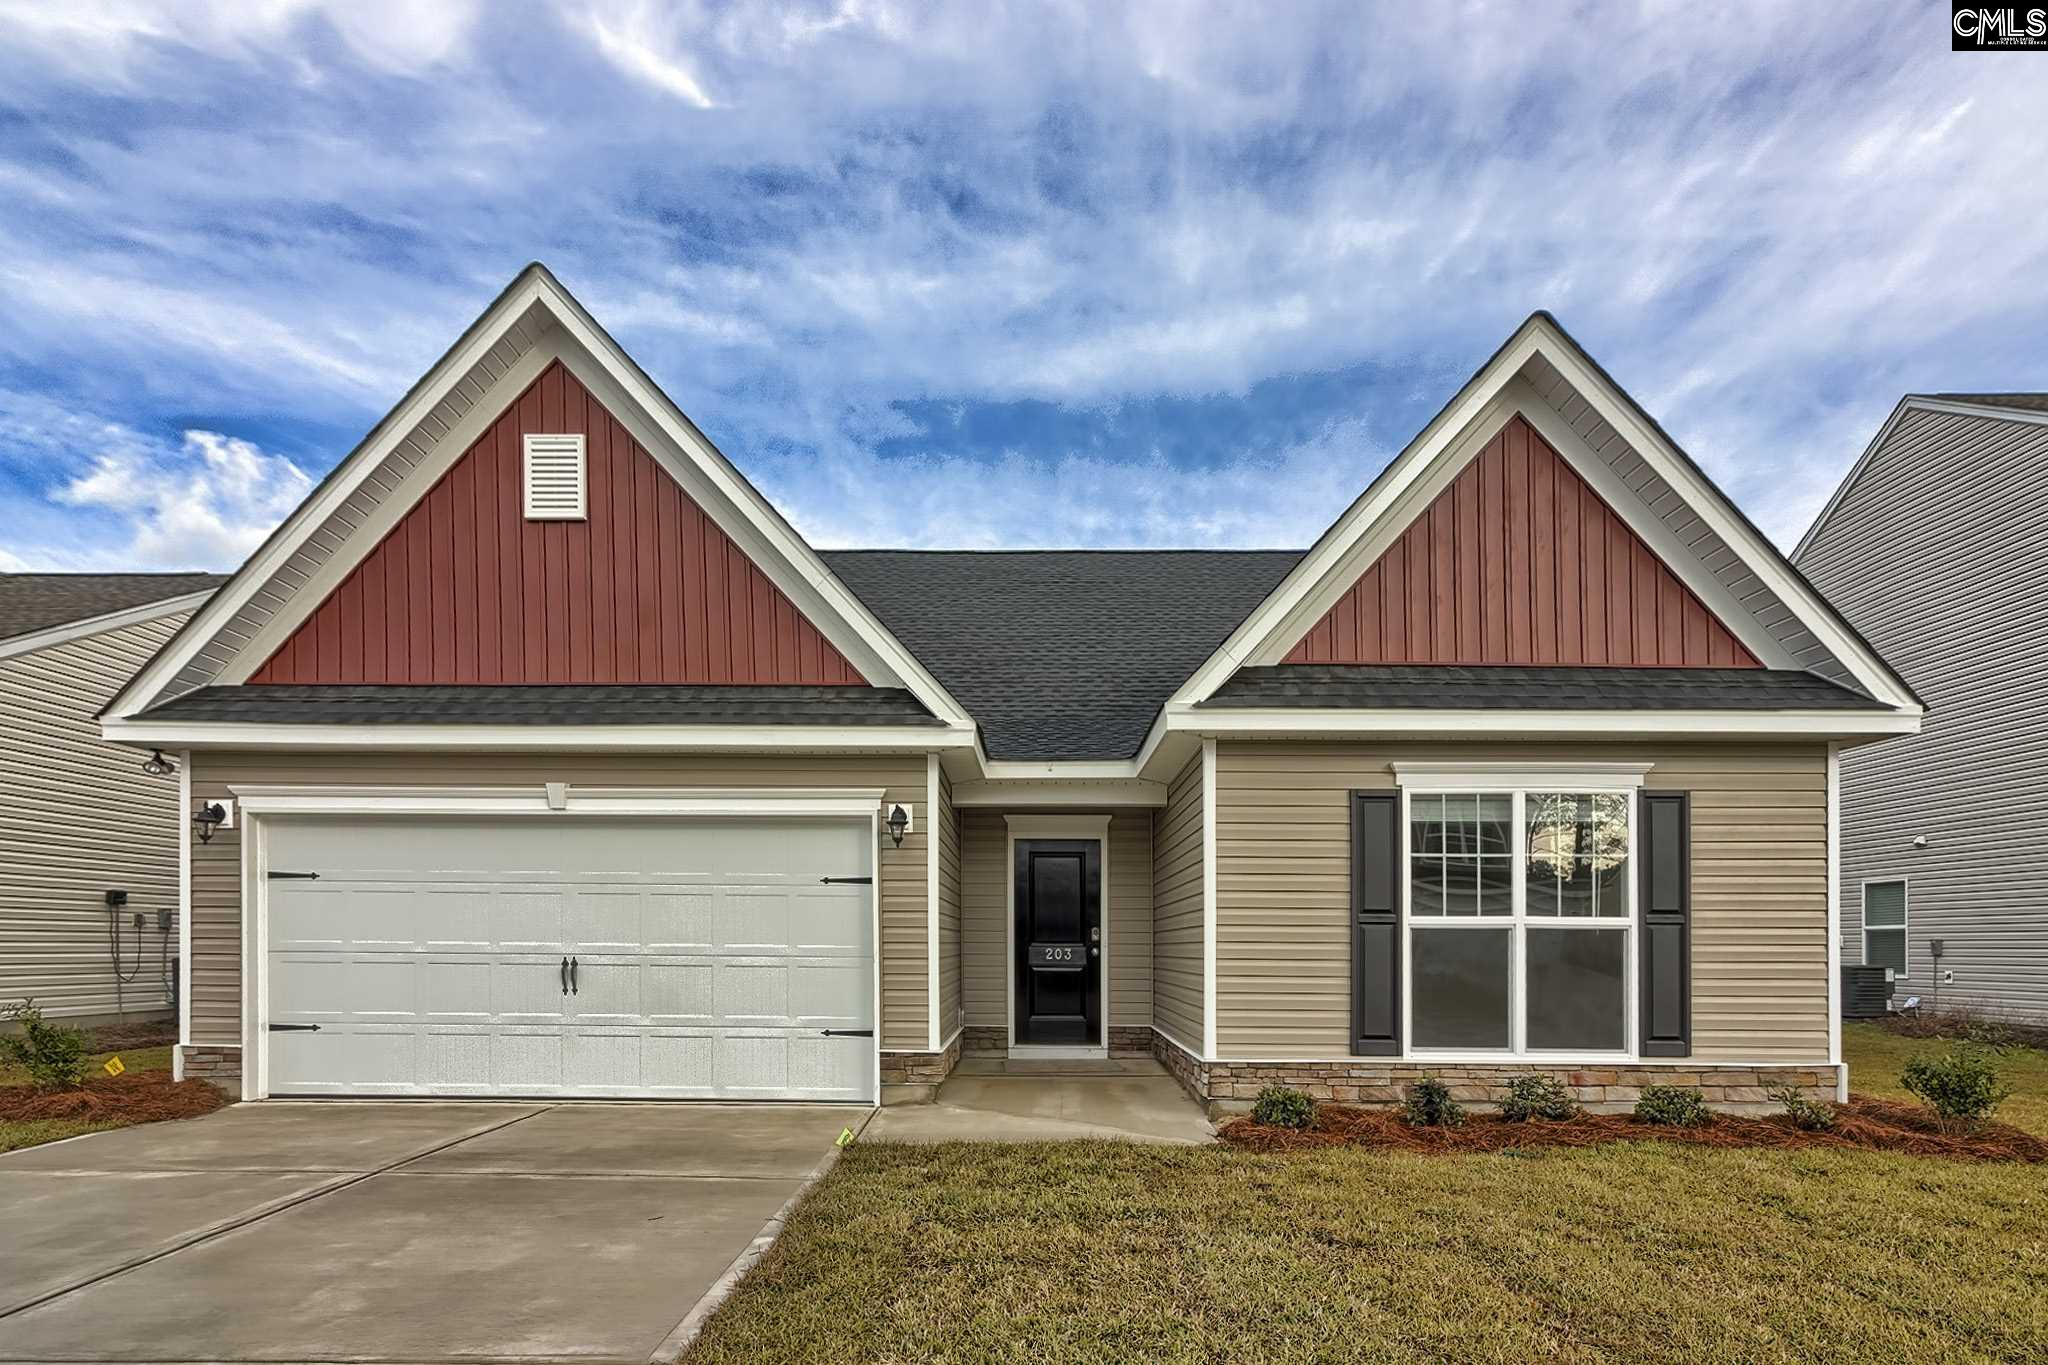 203 Turnfield West Columbia, SC 29170